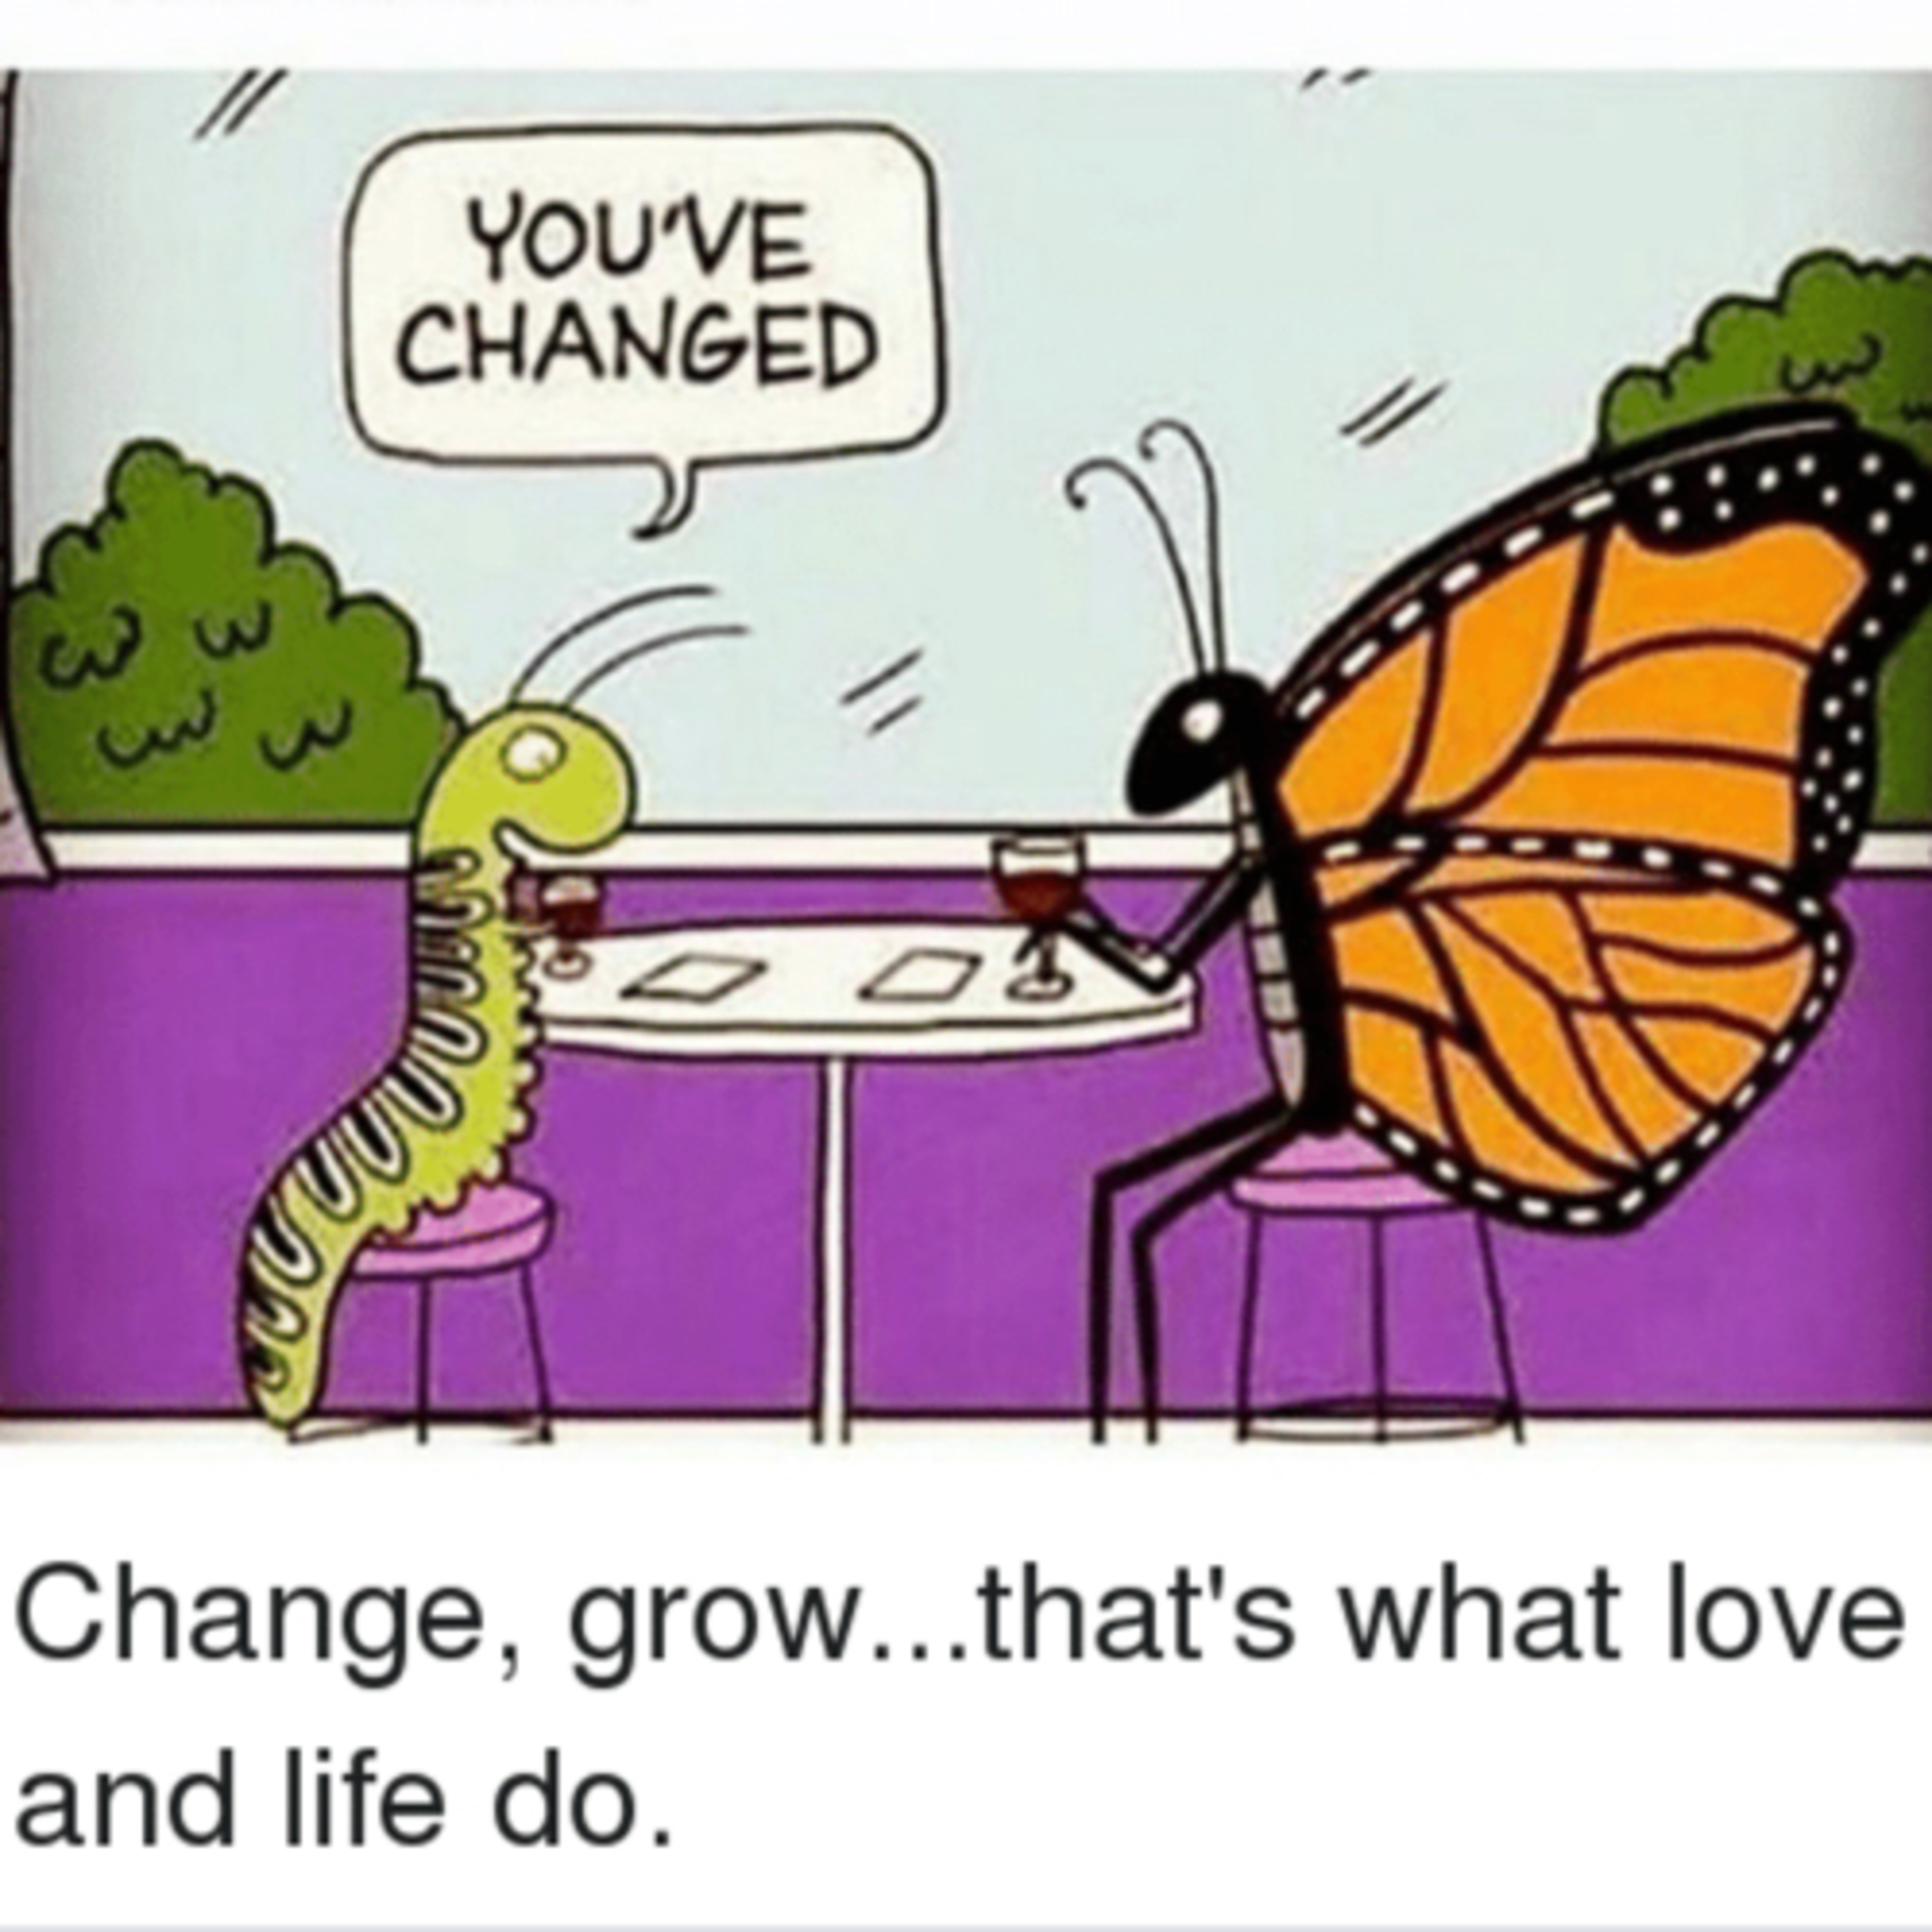 Let the caterpillar grow. 👌🏾 Butterfly Fly! 🦋